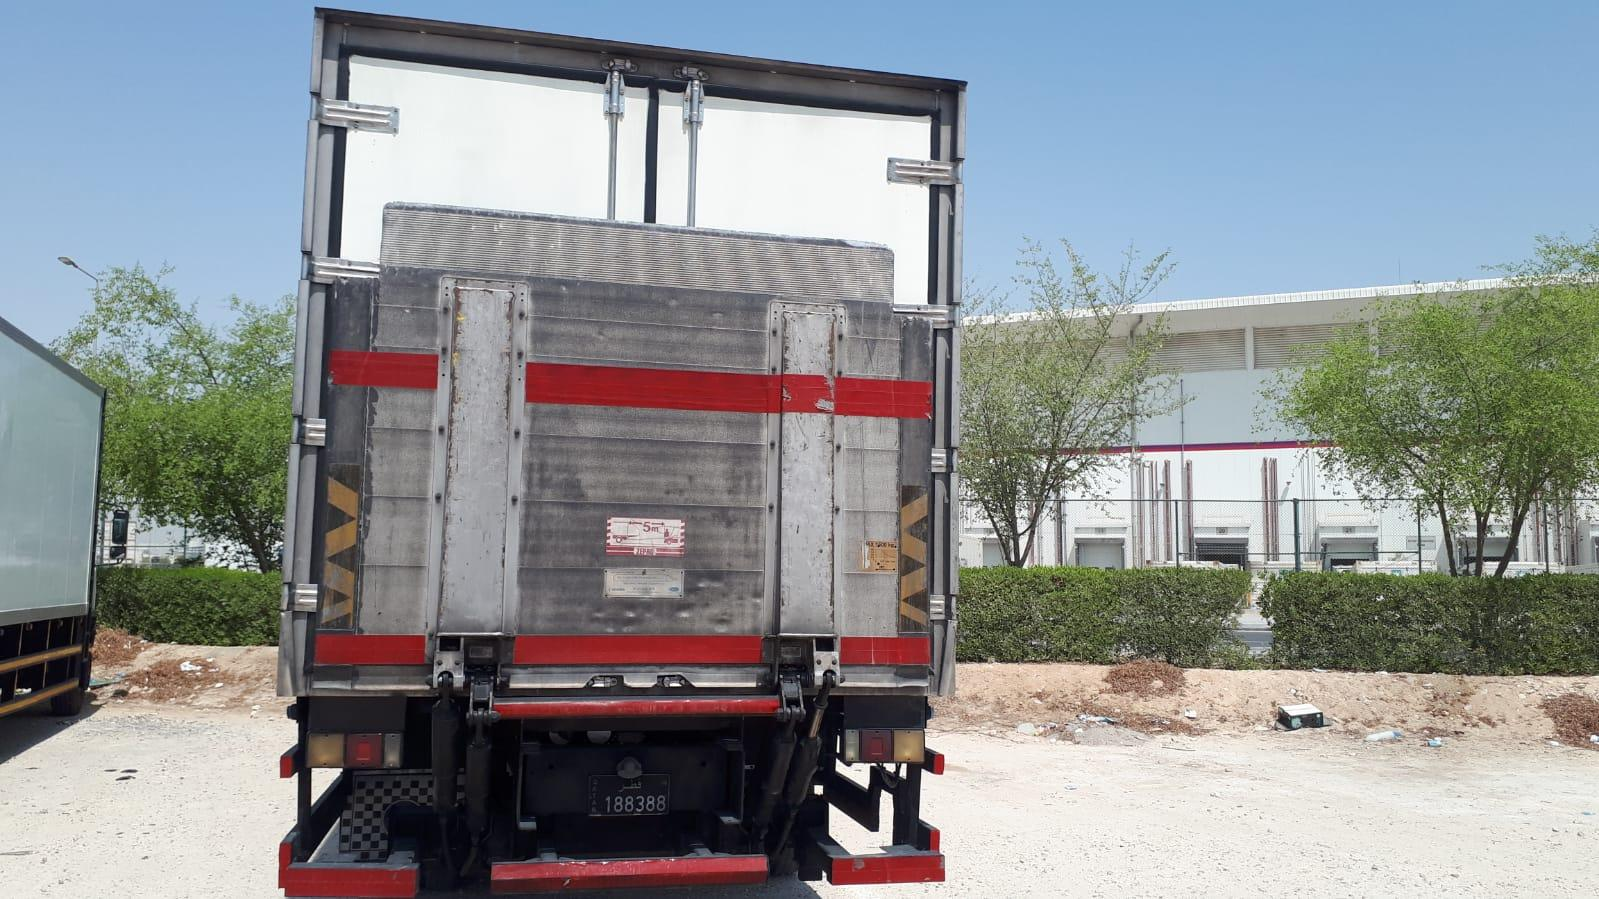 Mitsubishi Fuso Japan 2008 truck with Reefer Box S